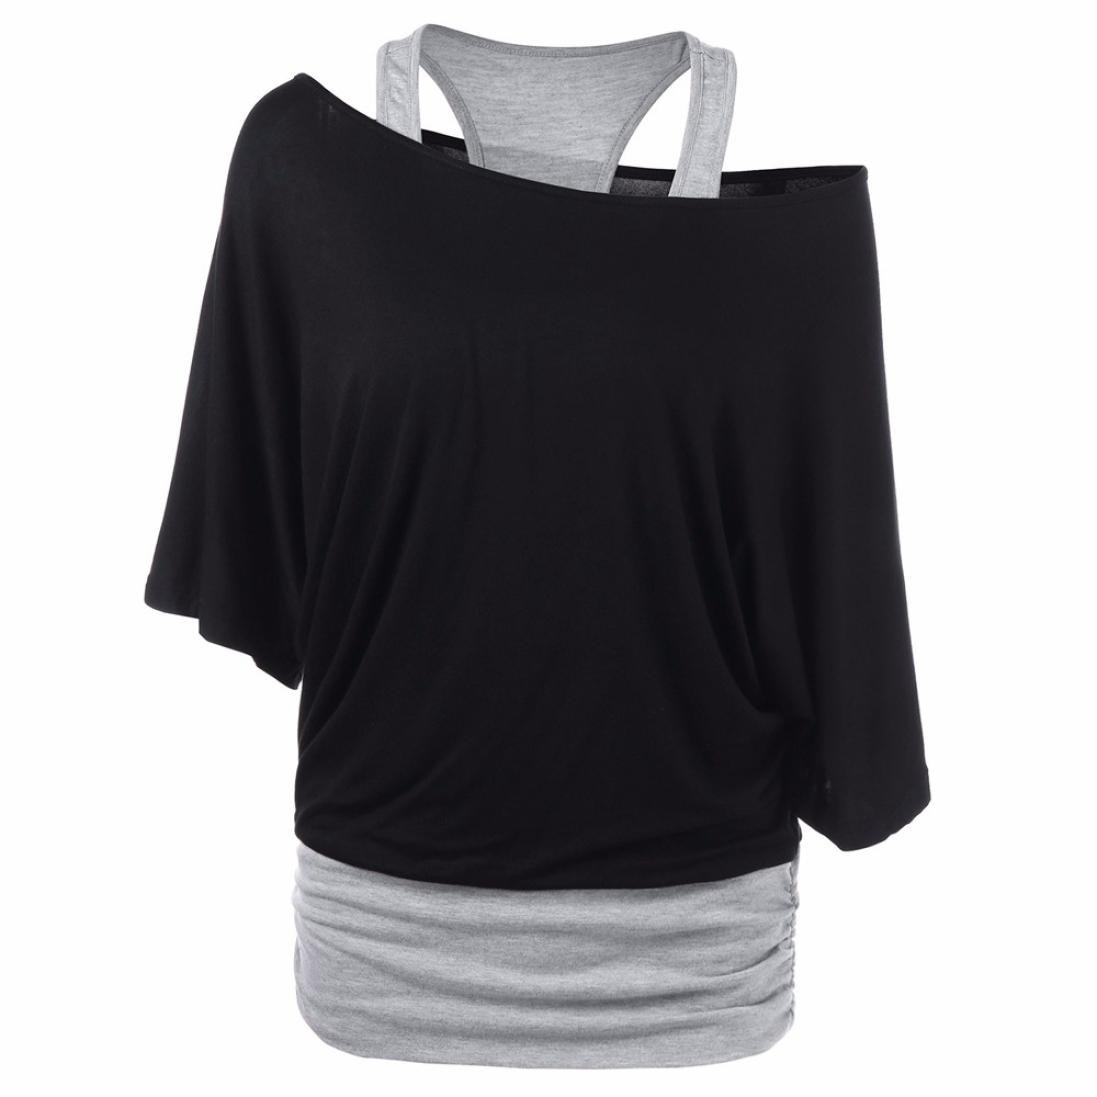 Iyyvv Fashion Women Casual Skew Neck Two Tone Patchwork T Shirt Tops